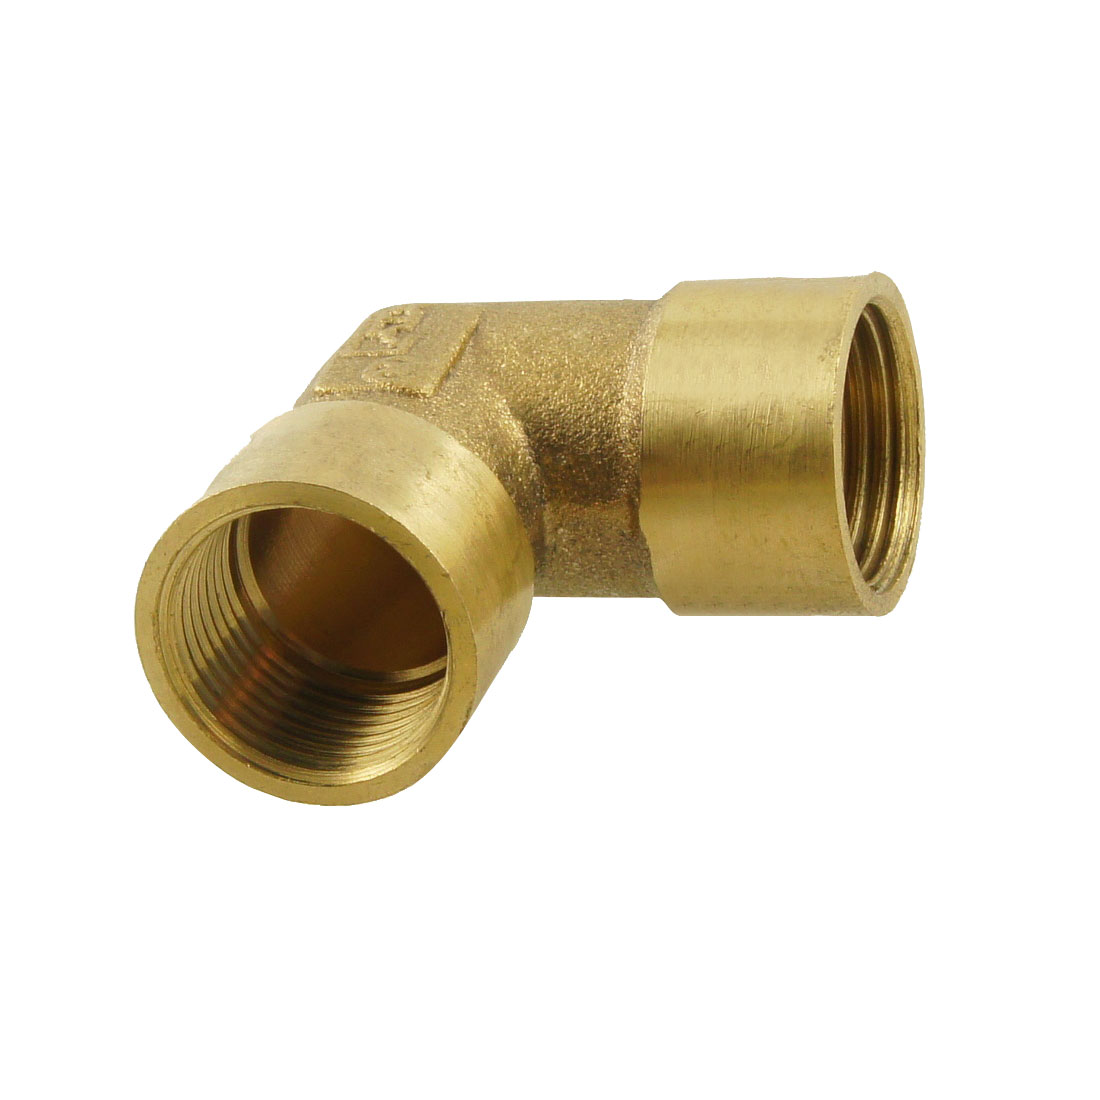 "3/8"" PT Female Threaded 90 Degree Elbow Fitting Union Adapter Bronze Tone"